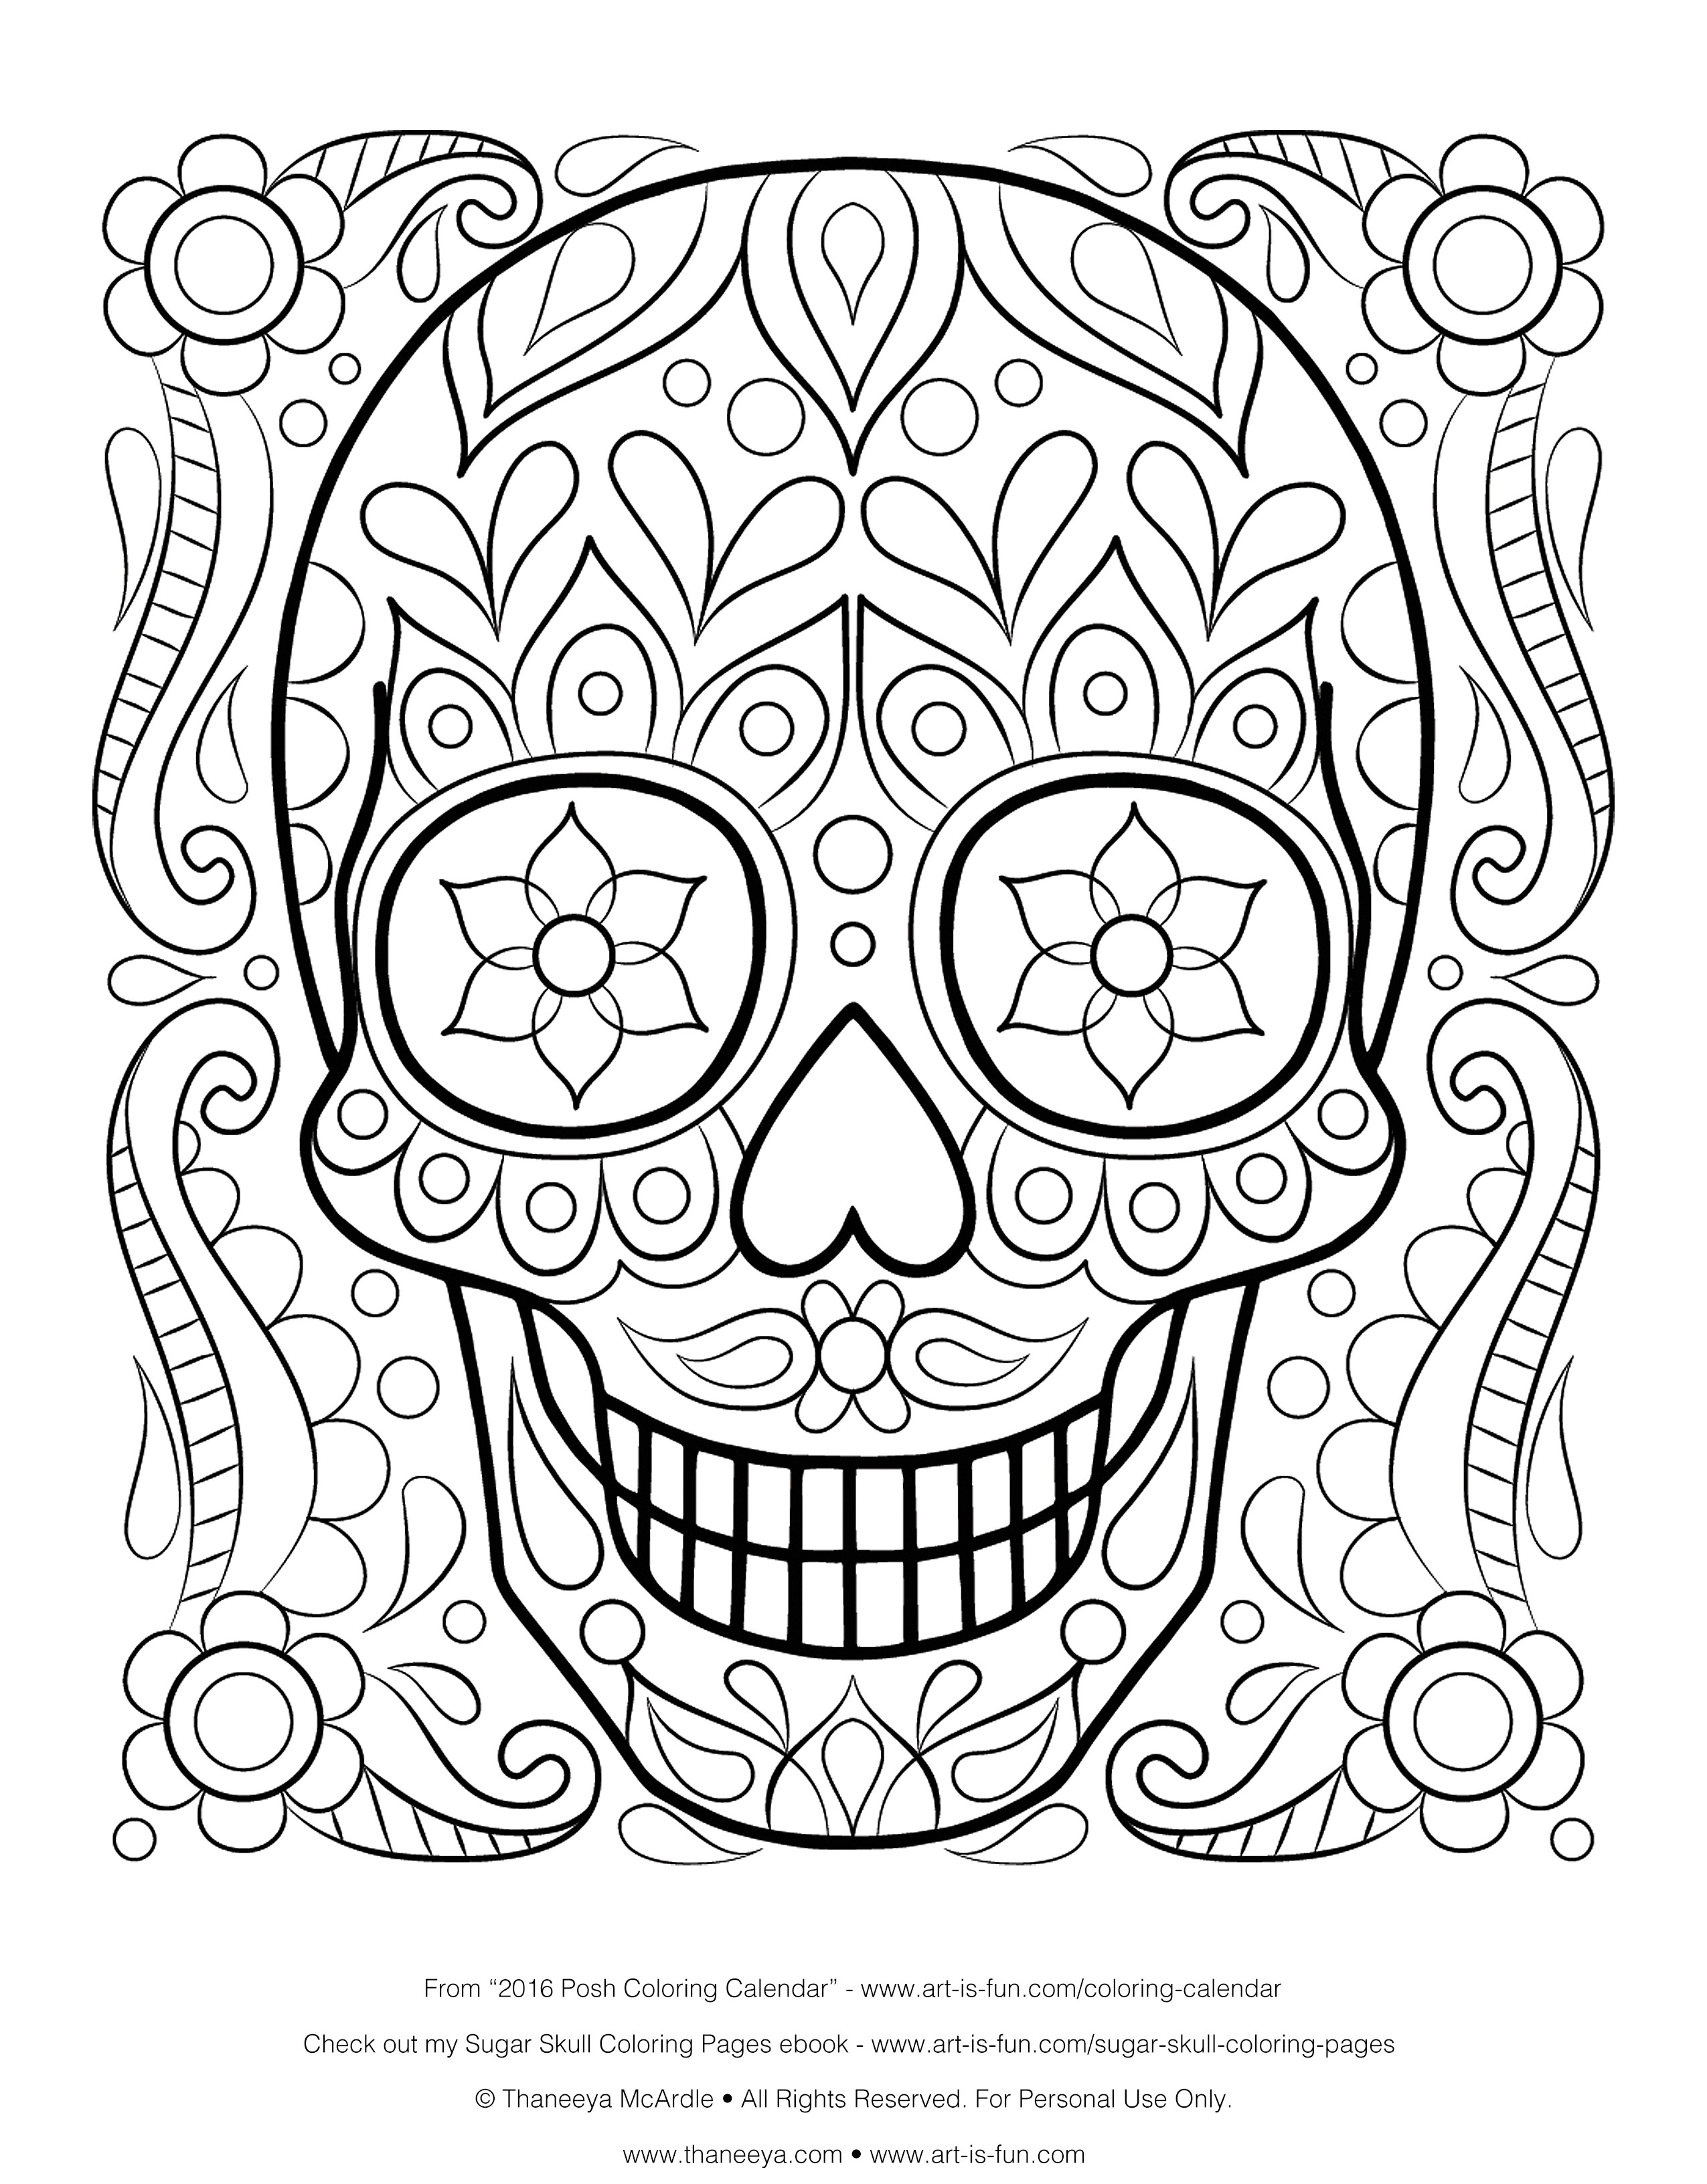 Sugar Skulls Coloring Pages Free  Gallery 19o - To print for your project